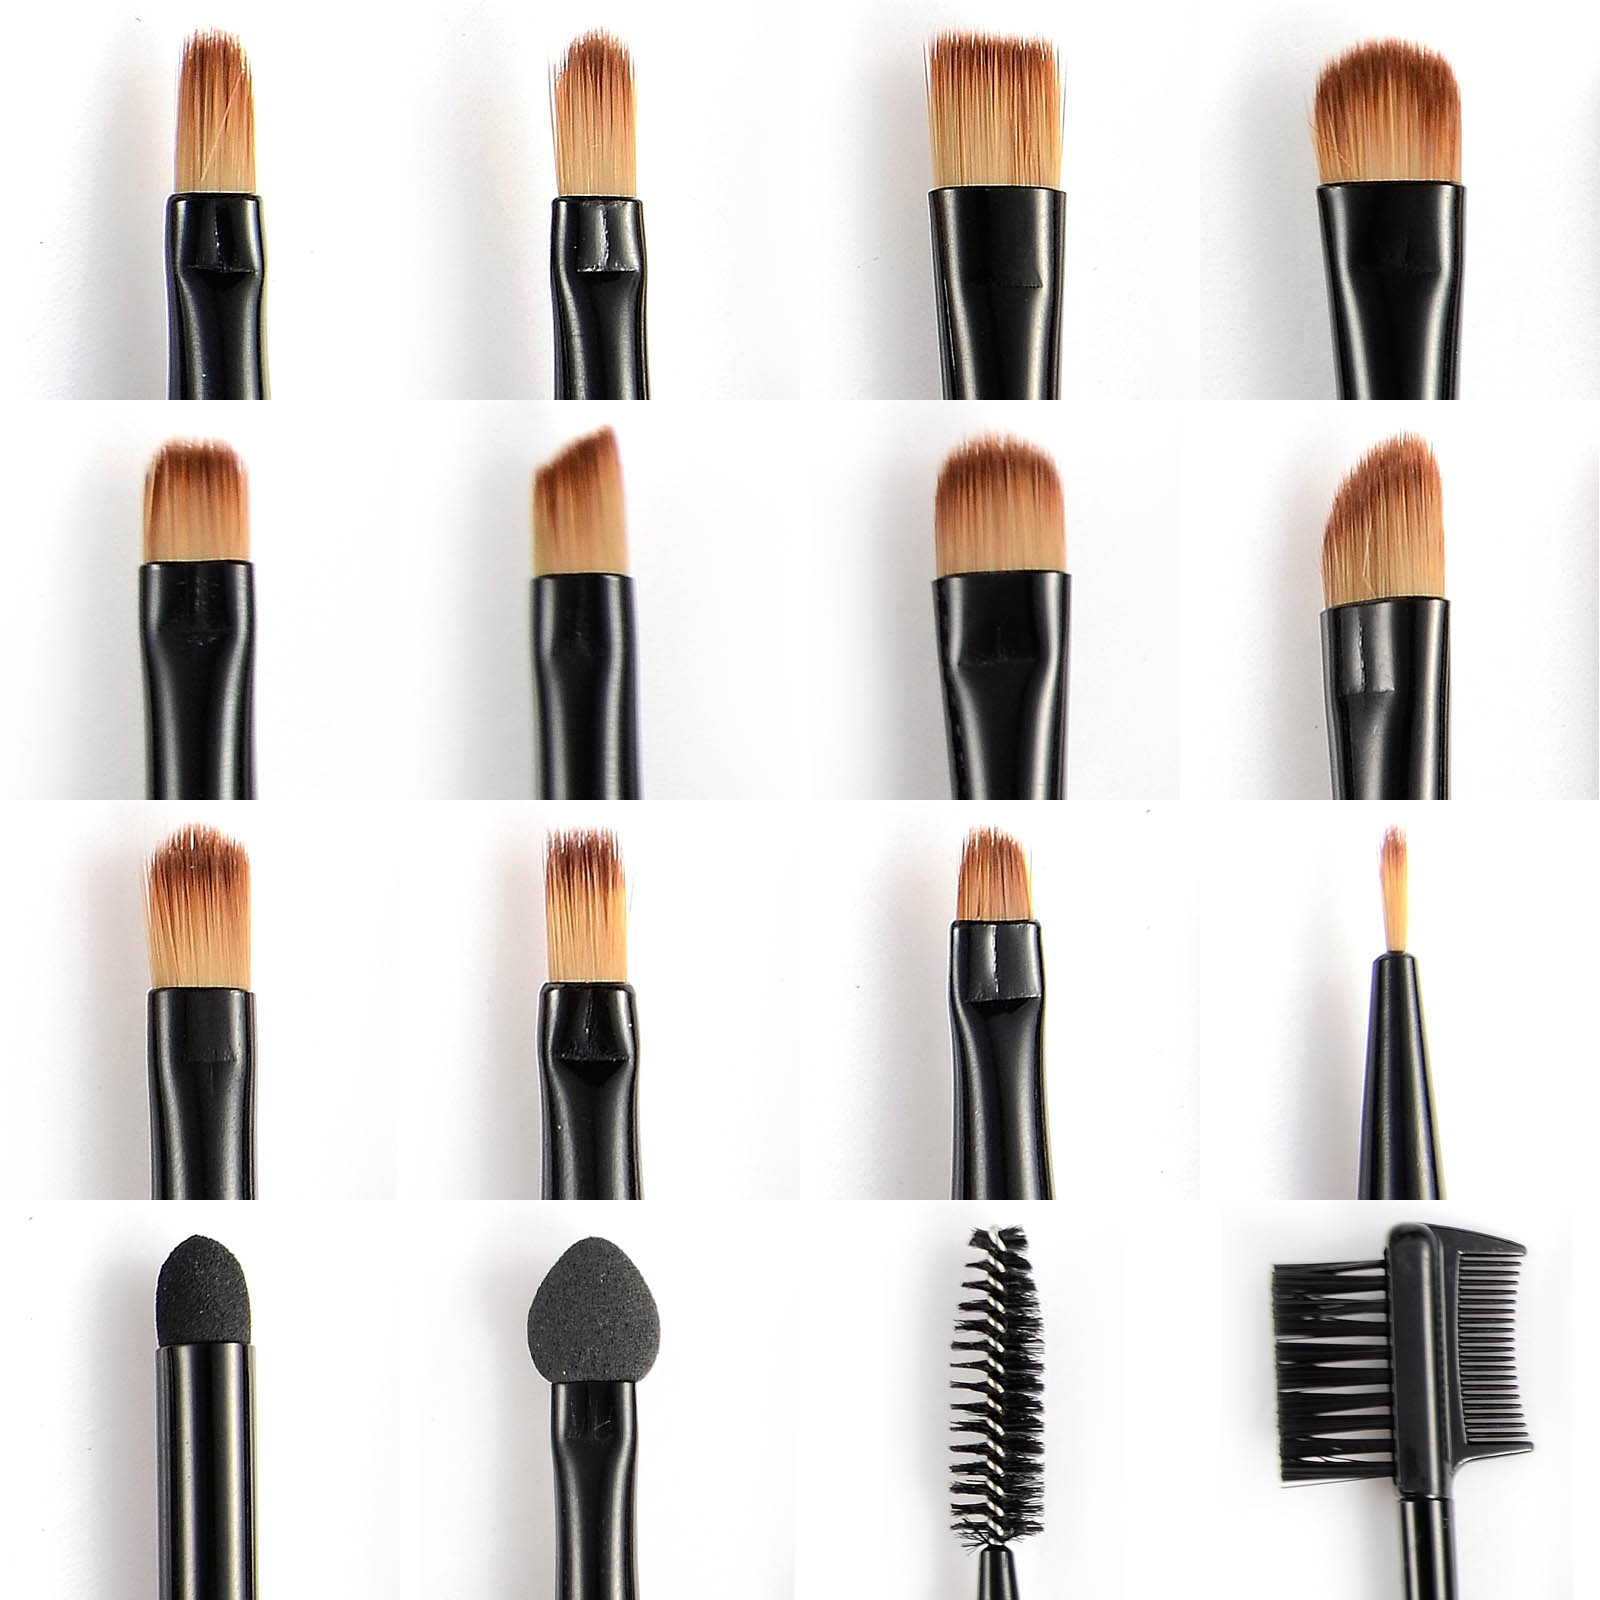 31pcs Professional Makeup Brushes Brush Wood Kit Cosmetic Set 36 Pcs Facial Make Up Tools With Black Leather Case Item Specifics Type